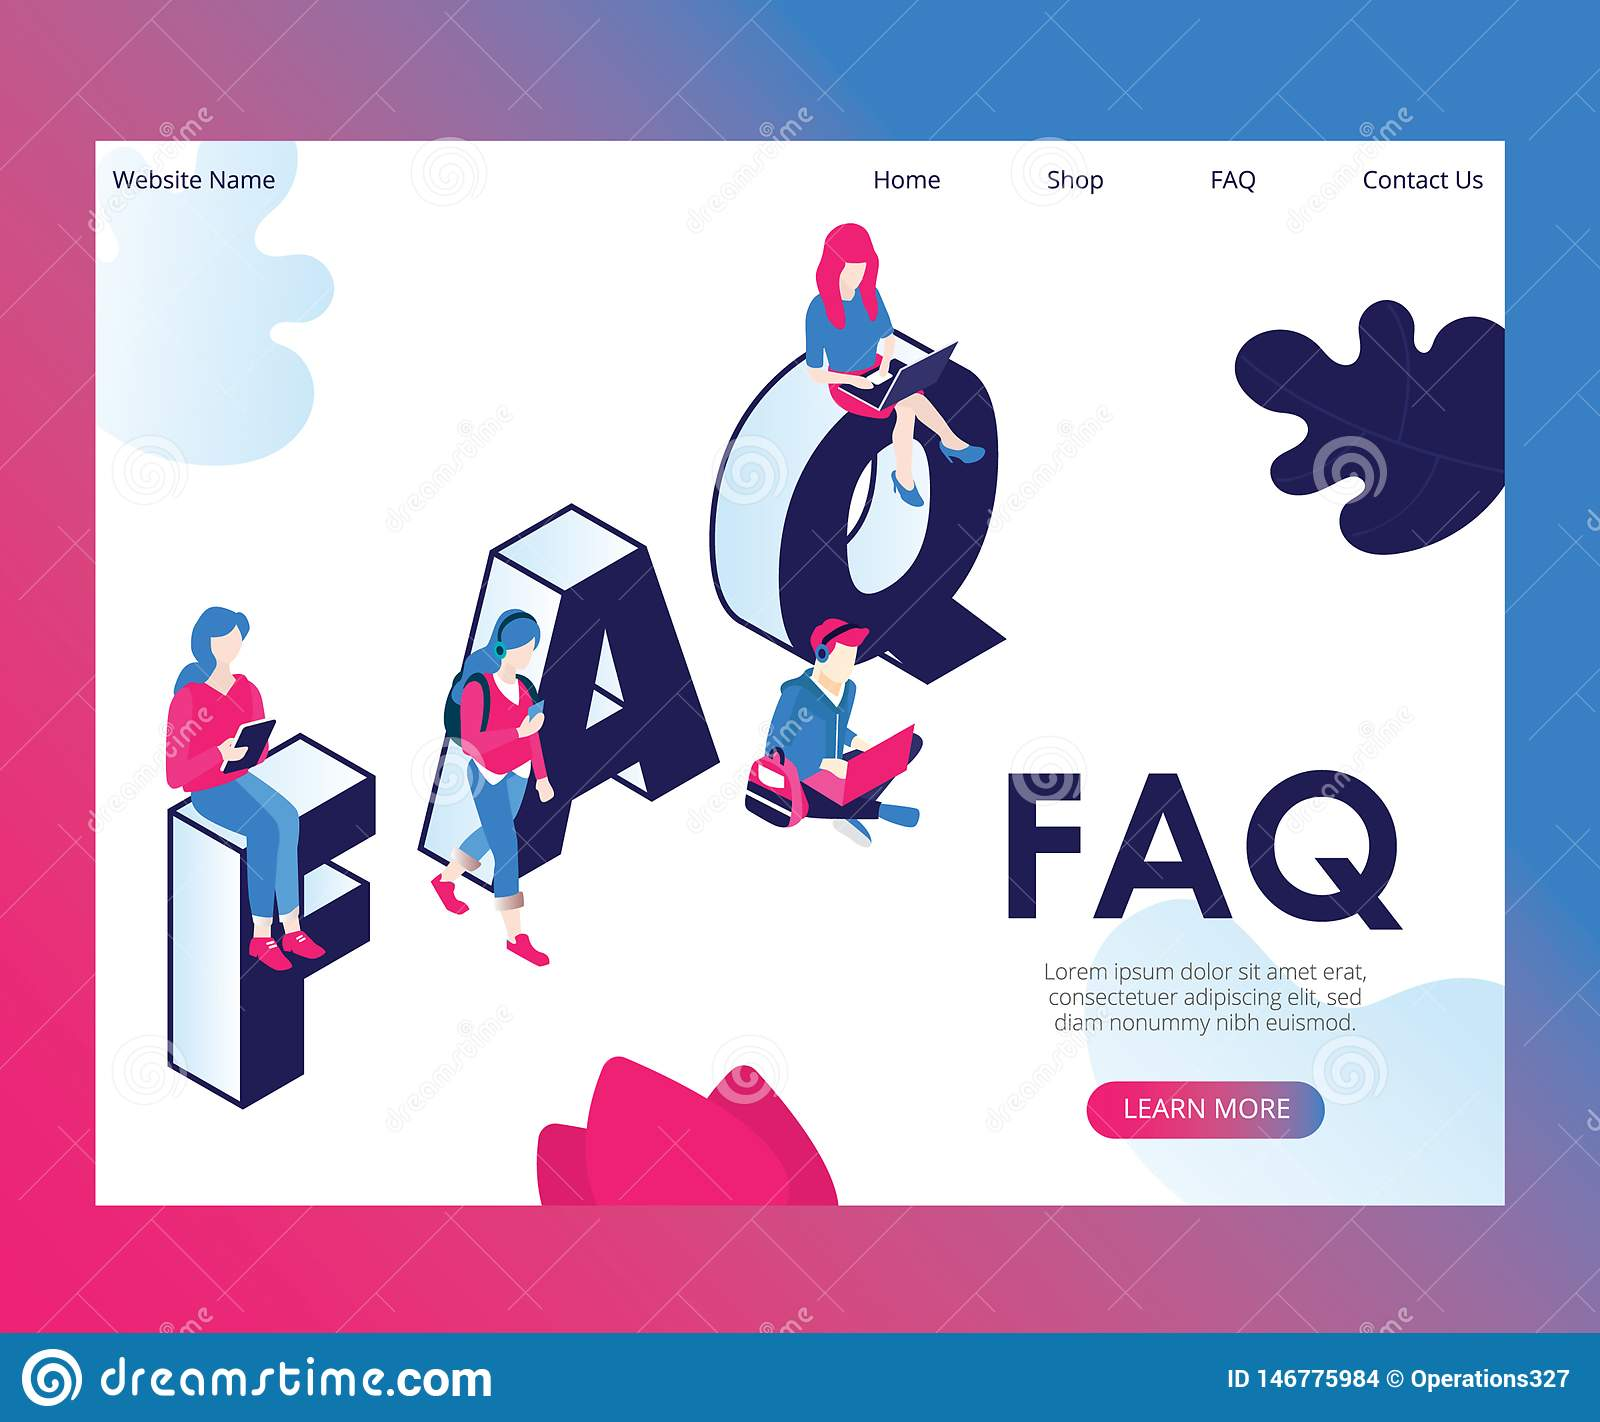 People are Asking Frequently Asked Questions Isometric Artwork Concept